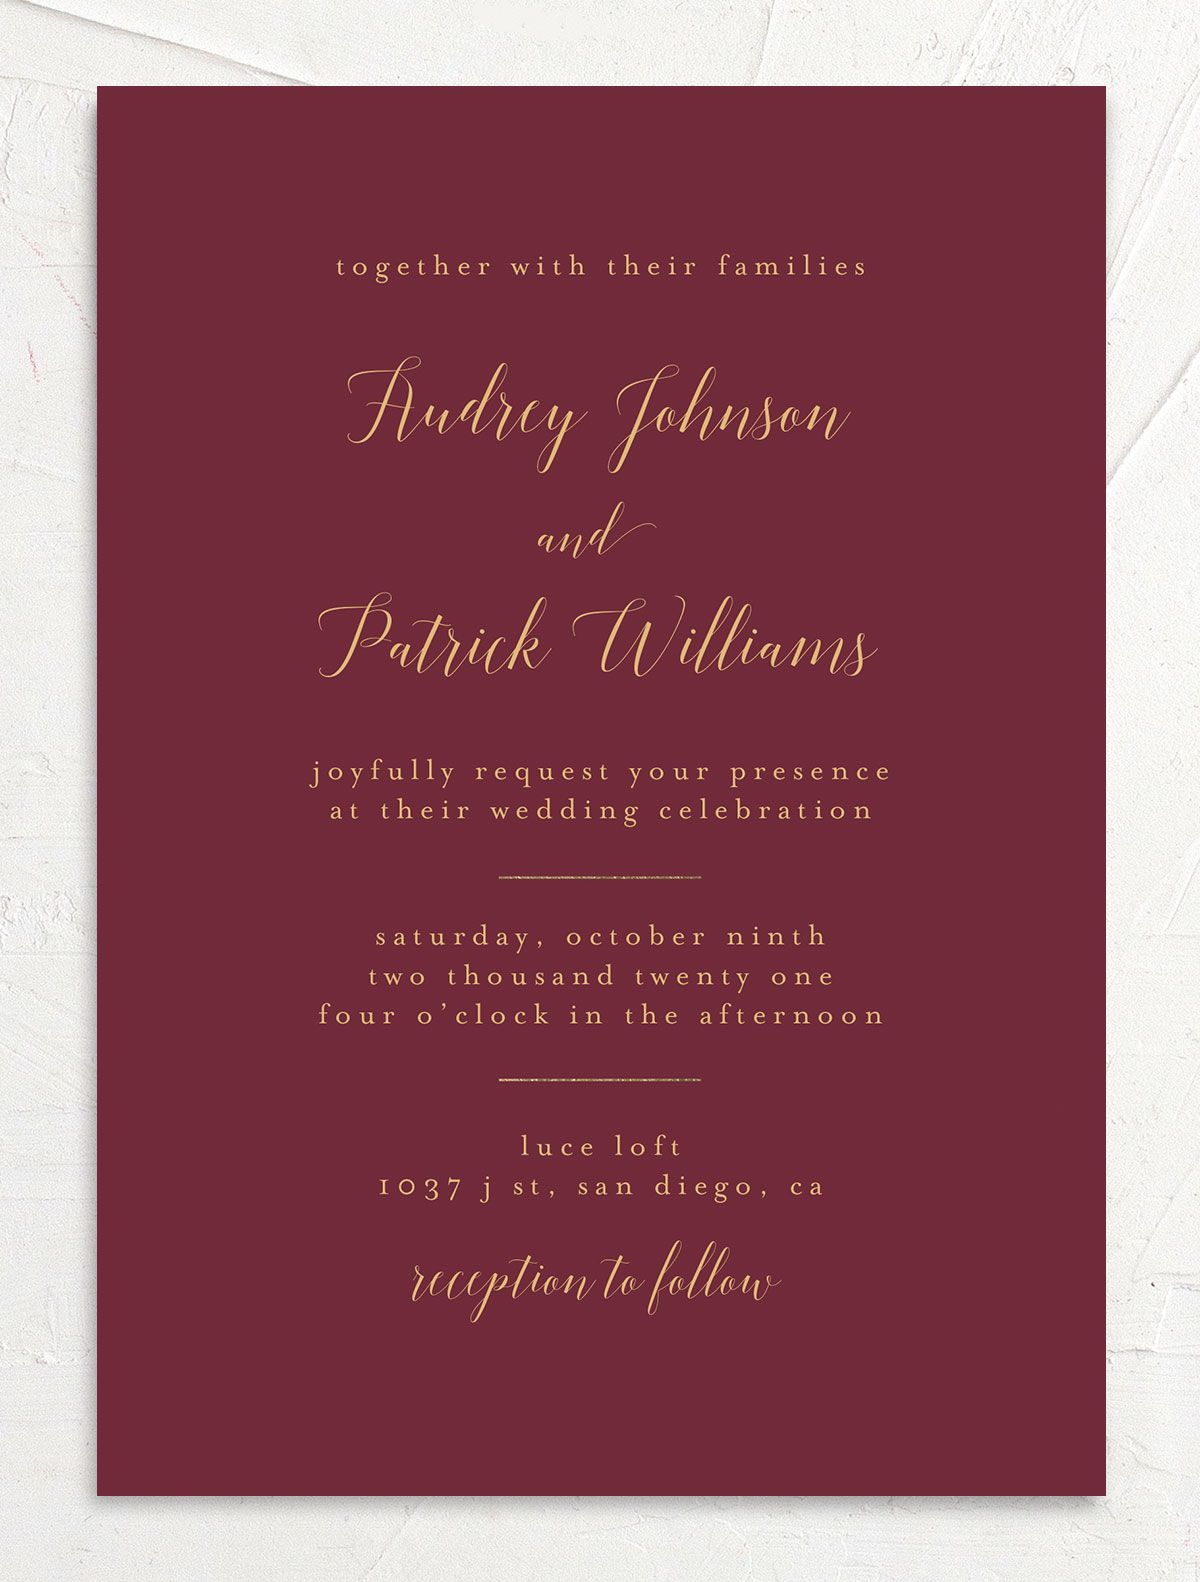 Marble and Gold Wedding Invitation front closeup in red